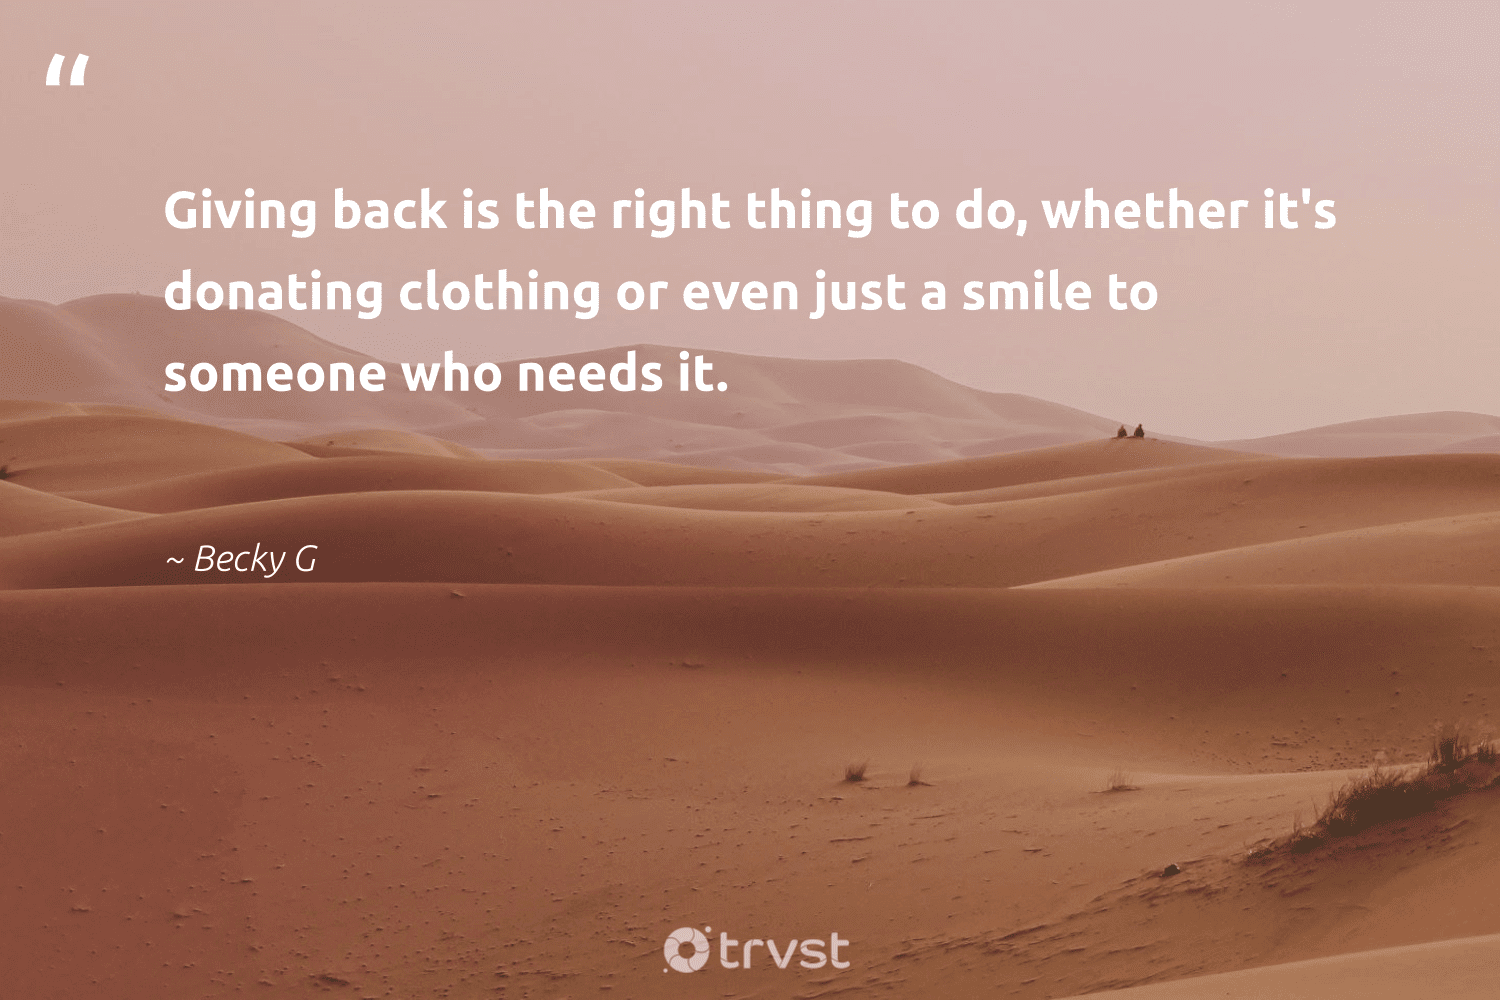 """""""Giving back is the right thing to do, whether it's donating clothing or even just a smile to someone who needs it.""""  - Becky G #trvst #quotes #givingback #dogood #socialgood #itscooltobekind #togetherwecan #planetearthfirst #giveback #changemakers #giveforthefuture #dotherightthing"""